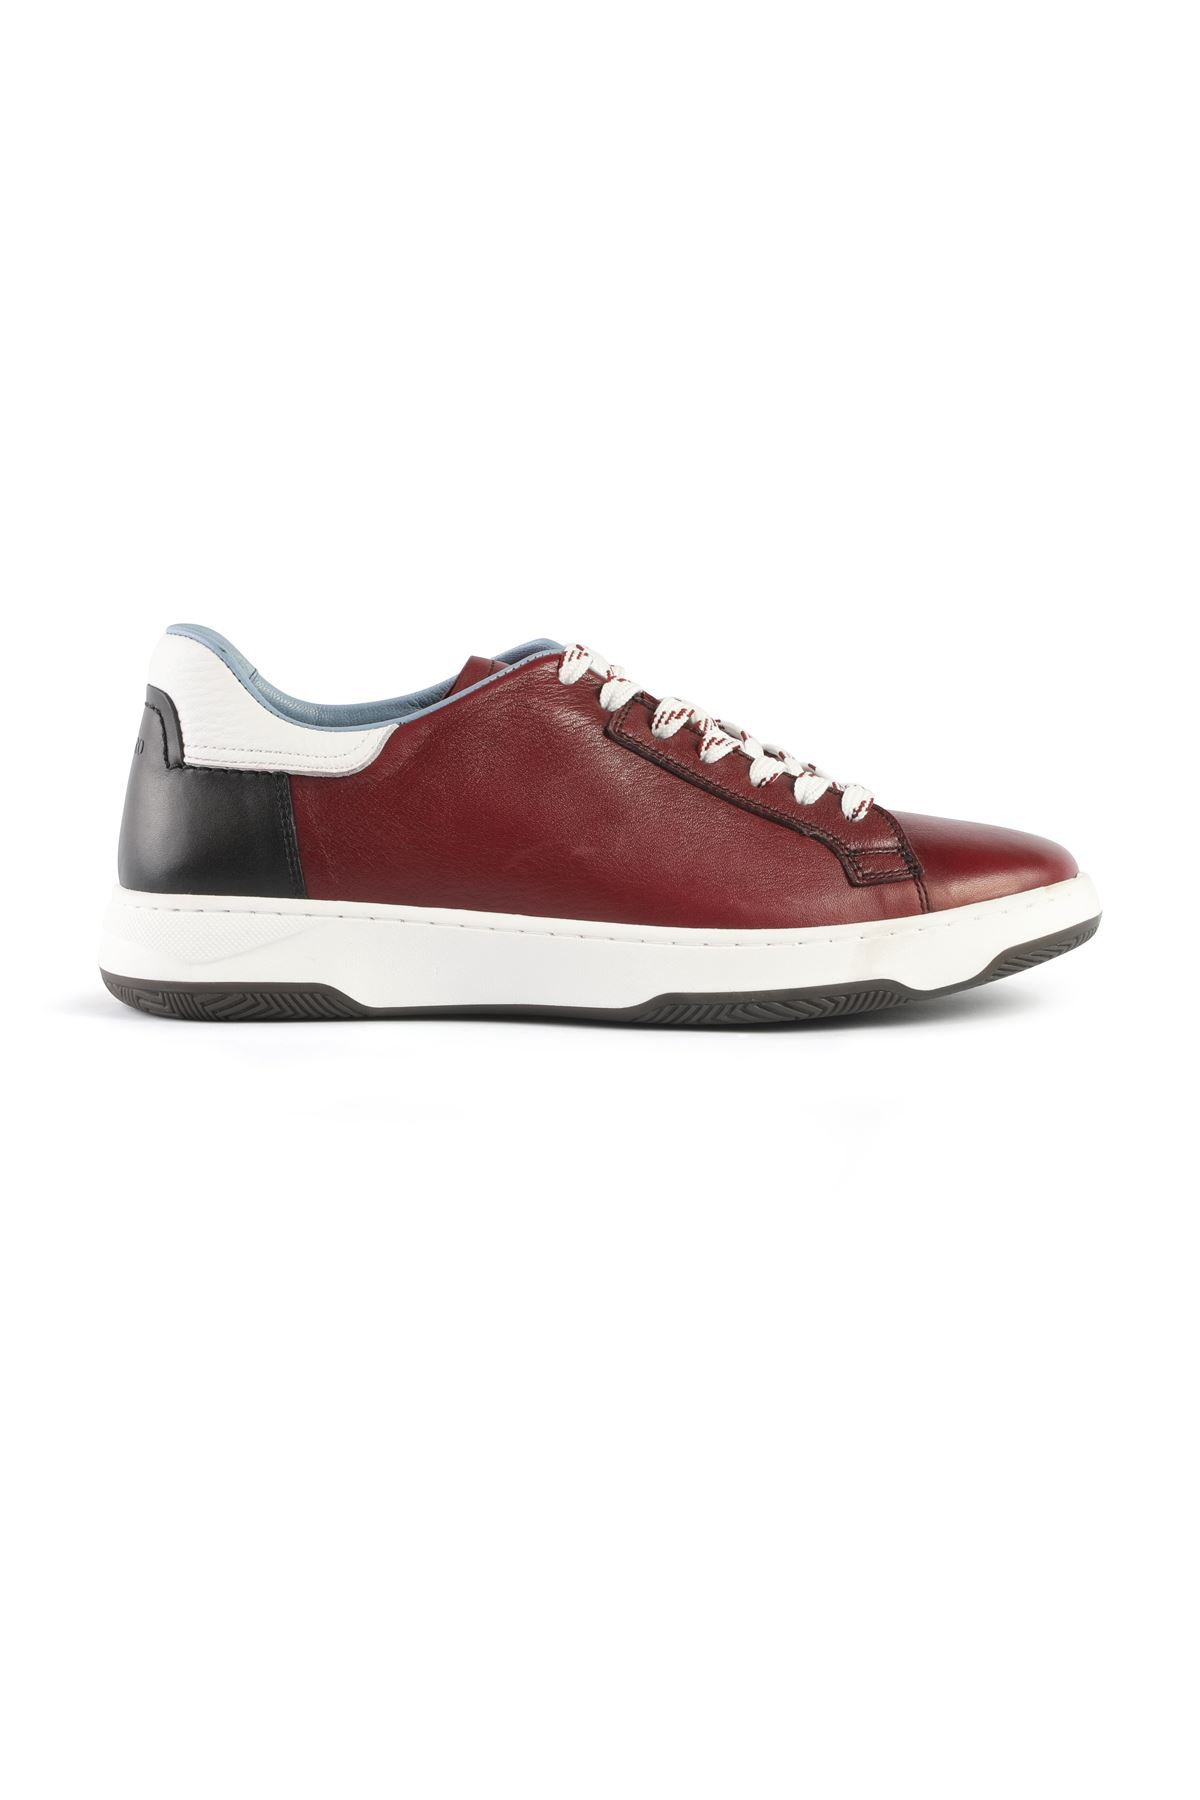 Libero L3227 Claret Red Sport Shoes